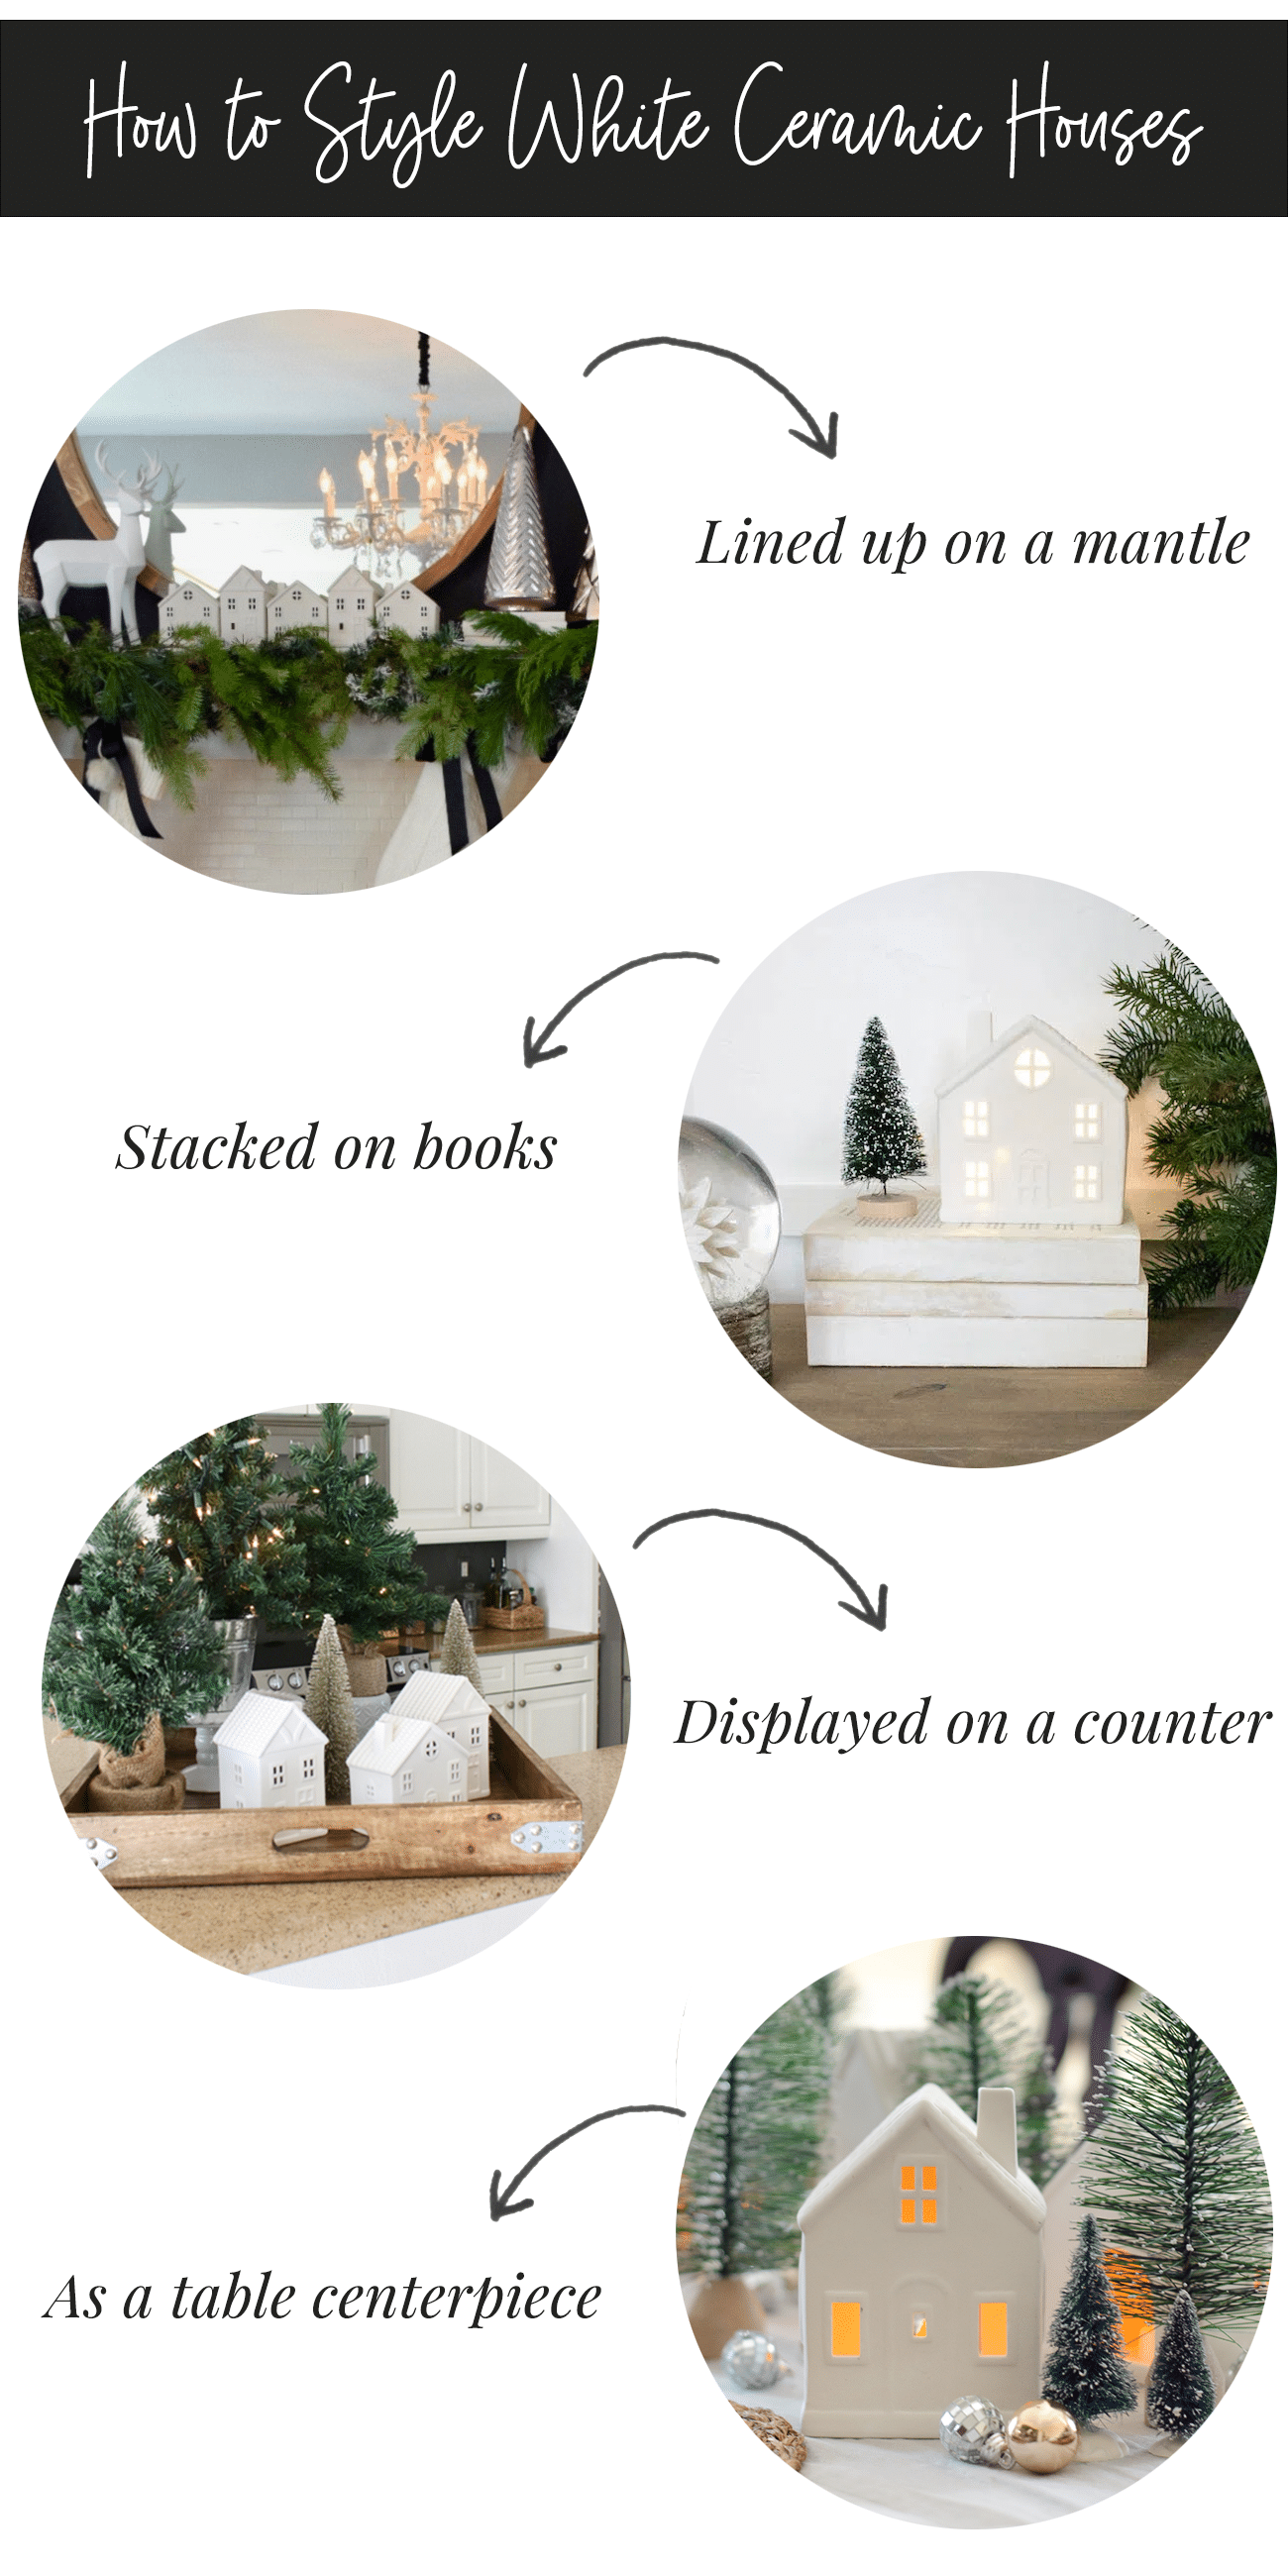 The Best White Ceramic Houses For Your Christmas Decor Life Unsweetened